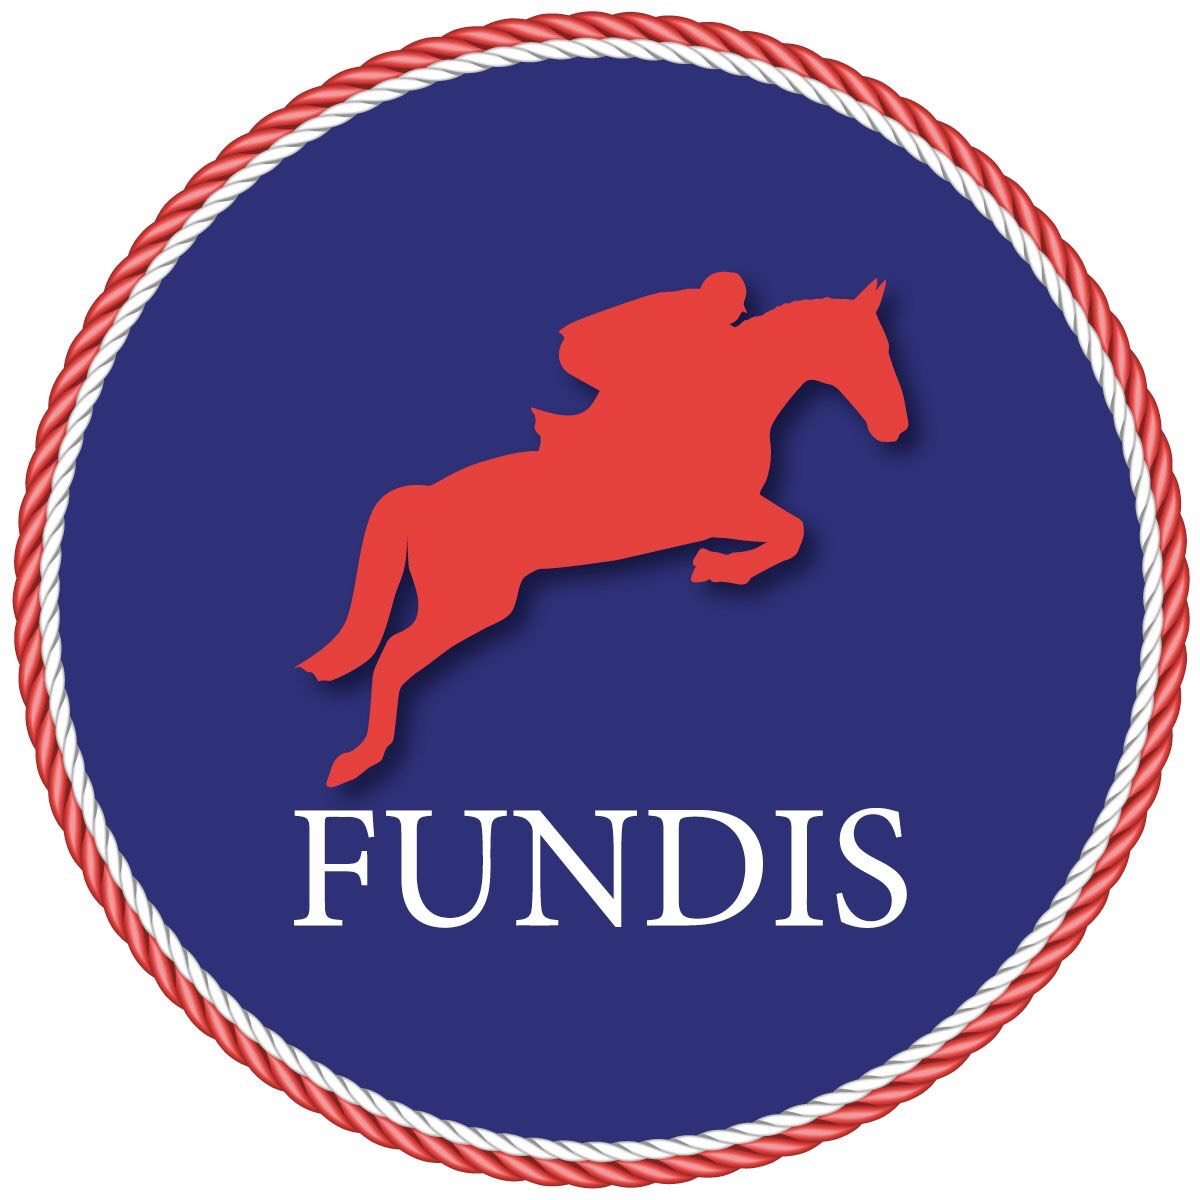 Fundis Reitsport Onlineshop